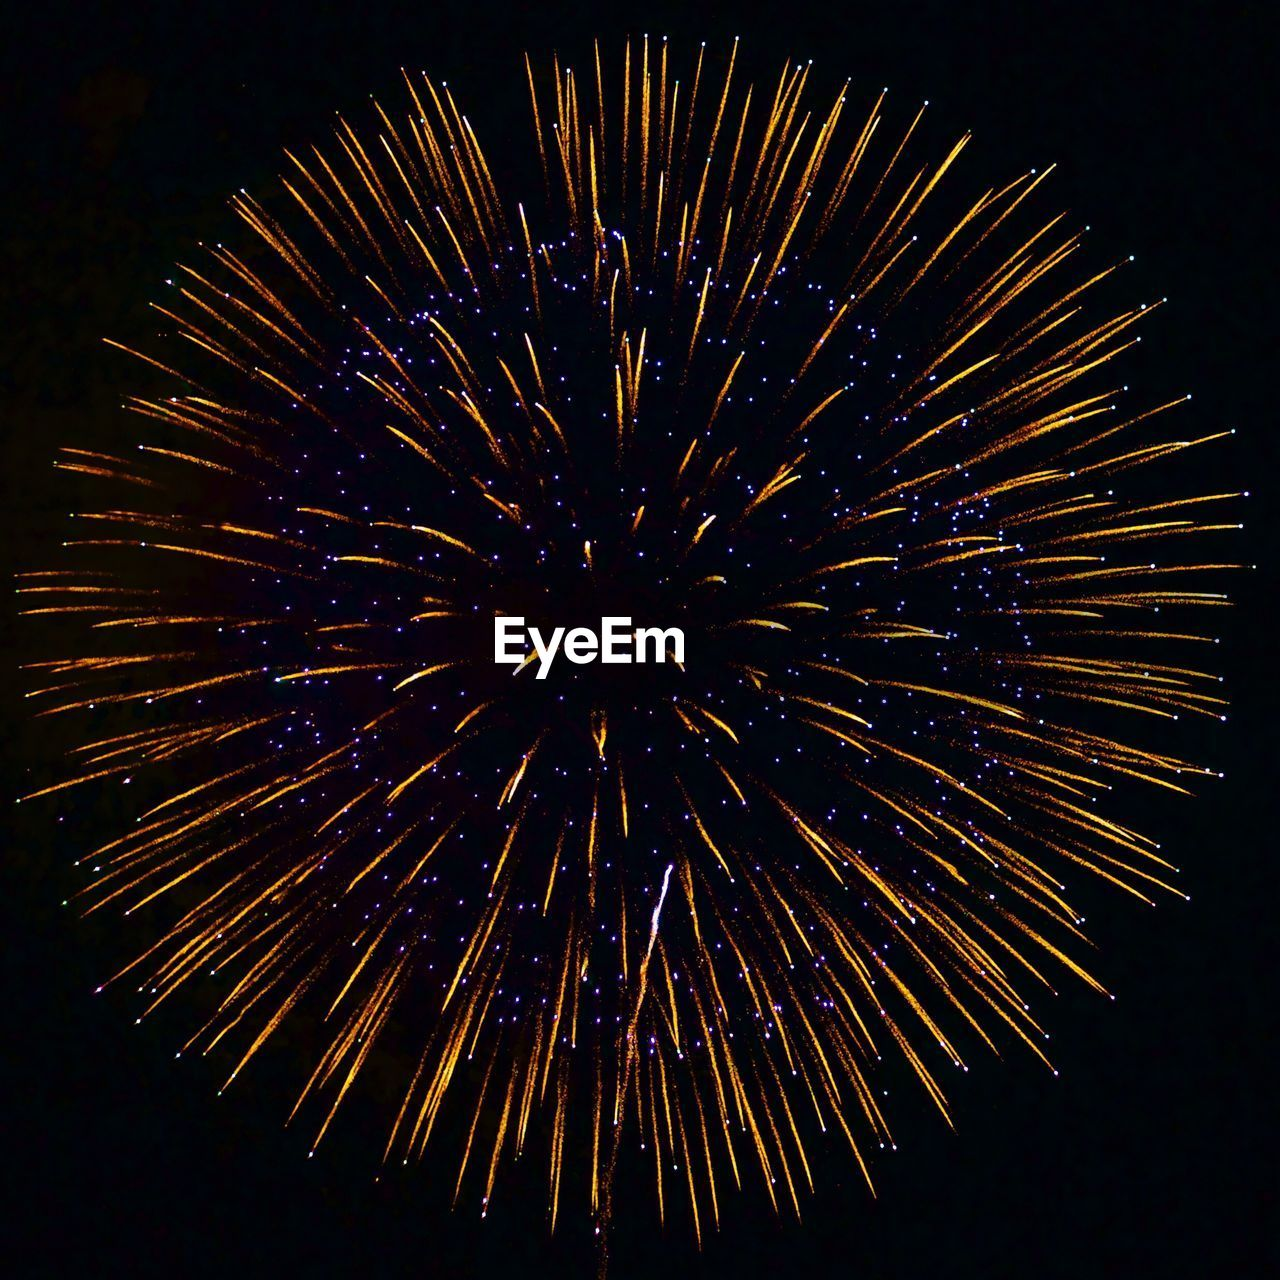 exploding, firework display, night, celebration, firework - man made object, glowing, long exposure, blurred motion, no people, low angle view, arts culture and entertainment, motion, illuminated, outdoors, black background, sky